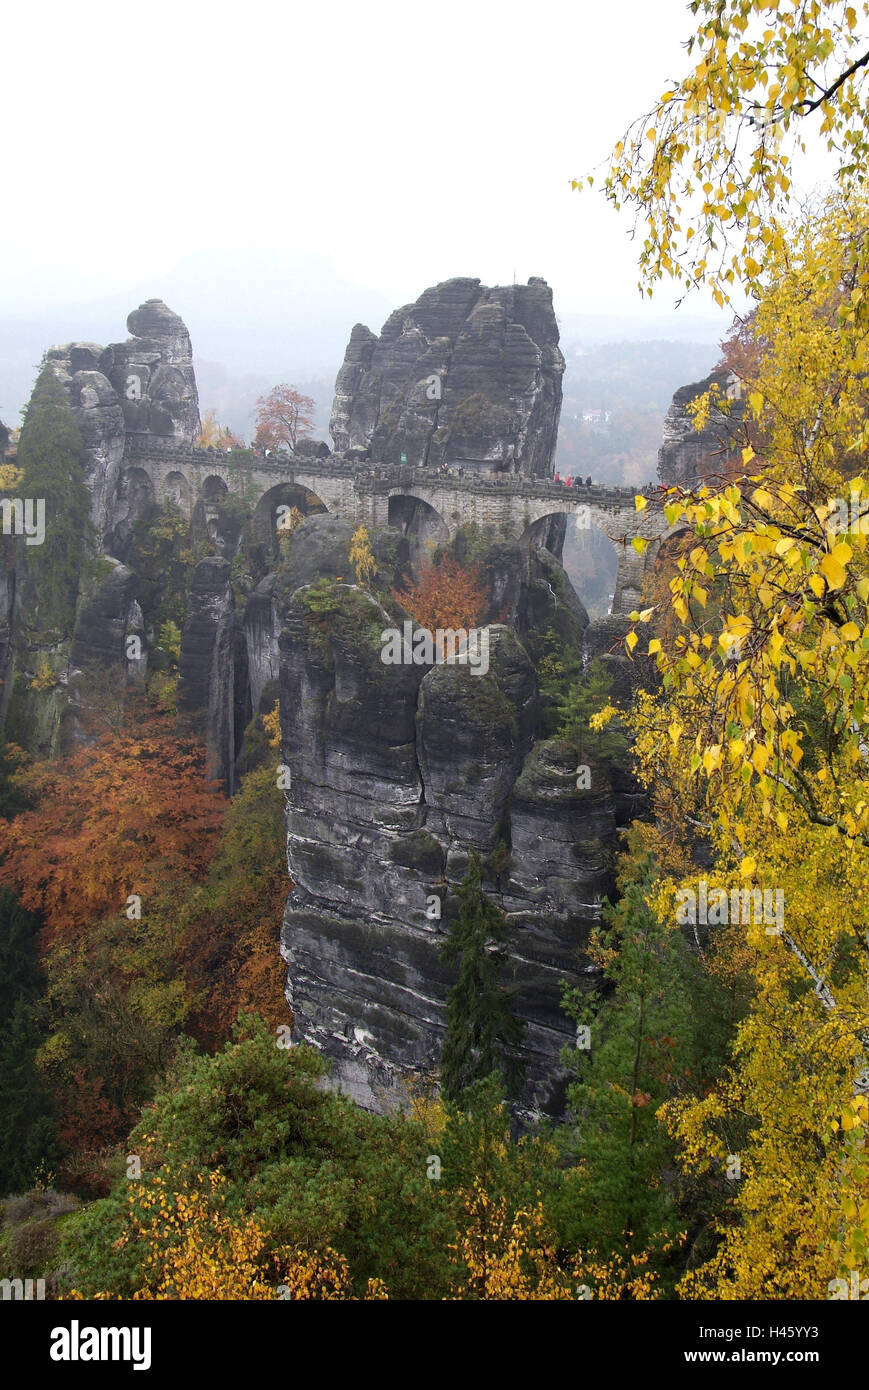 Germany, Saxony, Elbsandsteingebirge, bastion, bastion bridge, - Stock Image